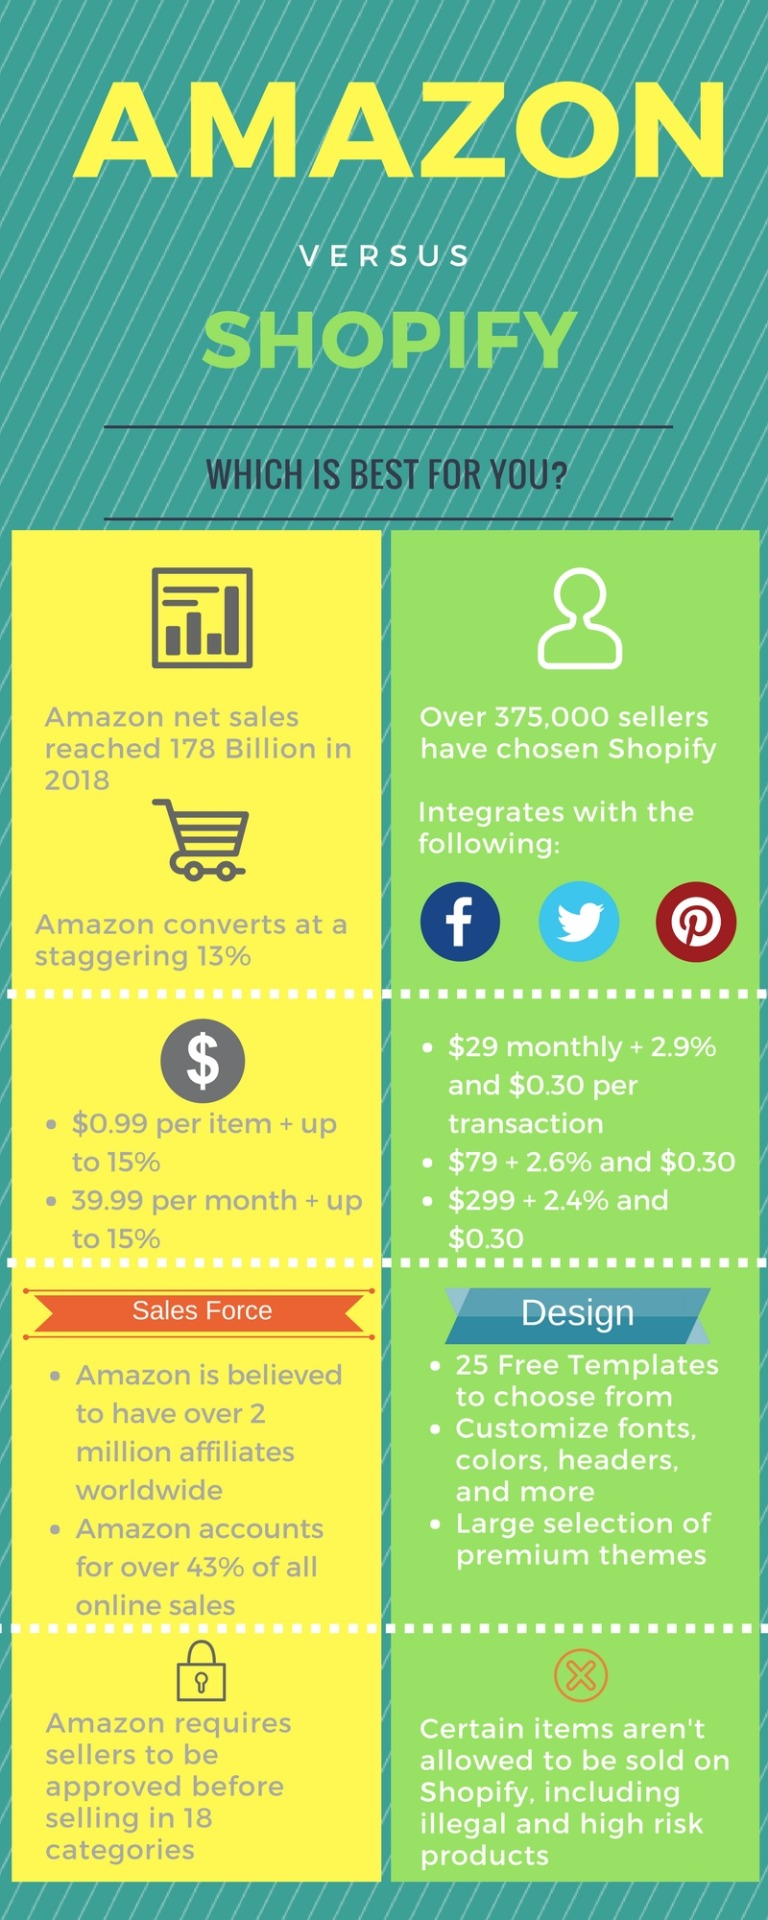 amazon-vs-shopify-infographic-plaza